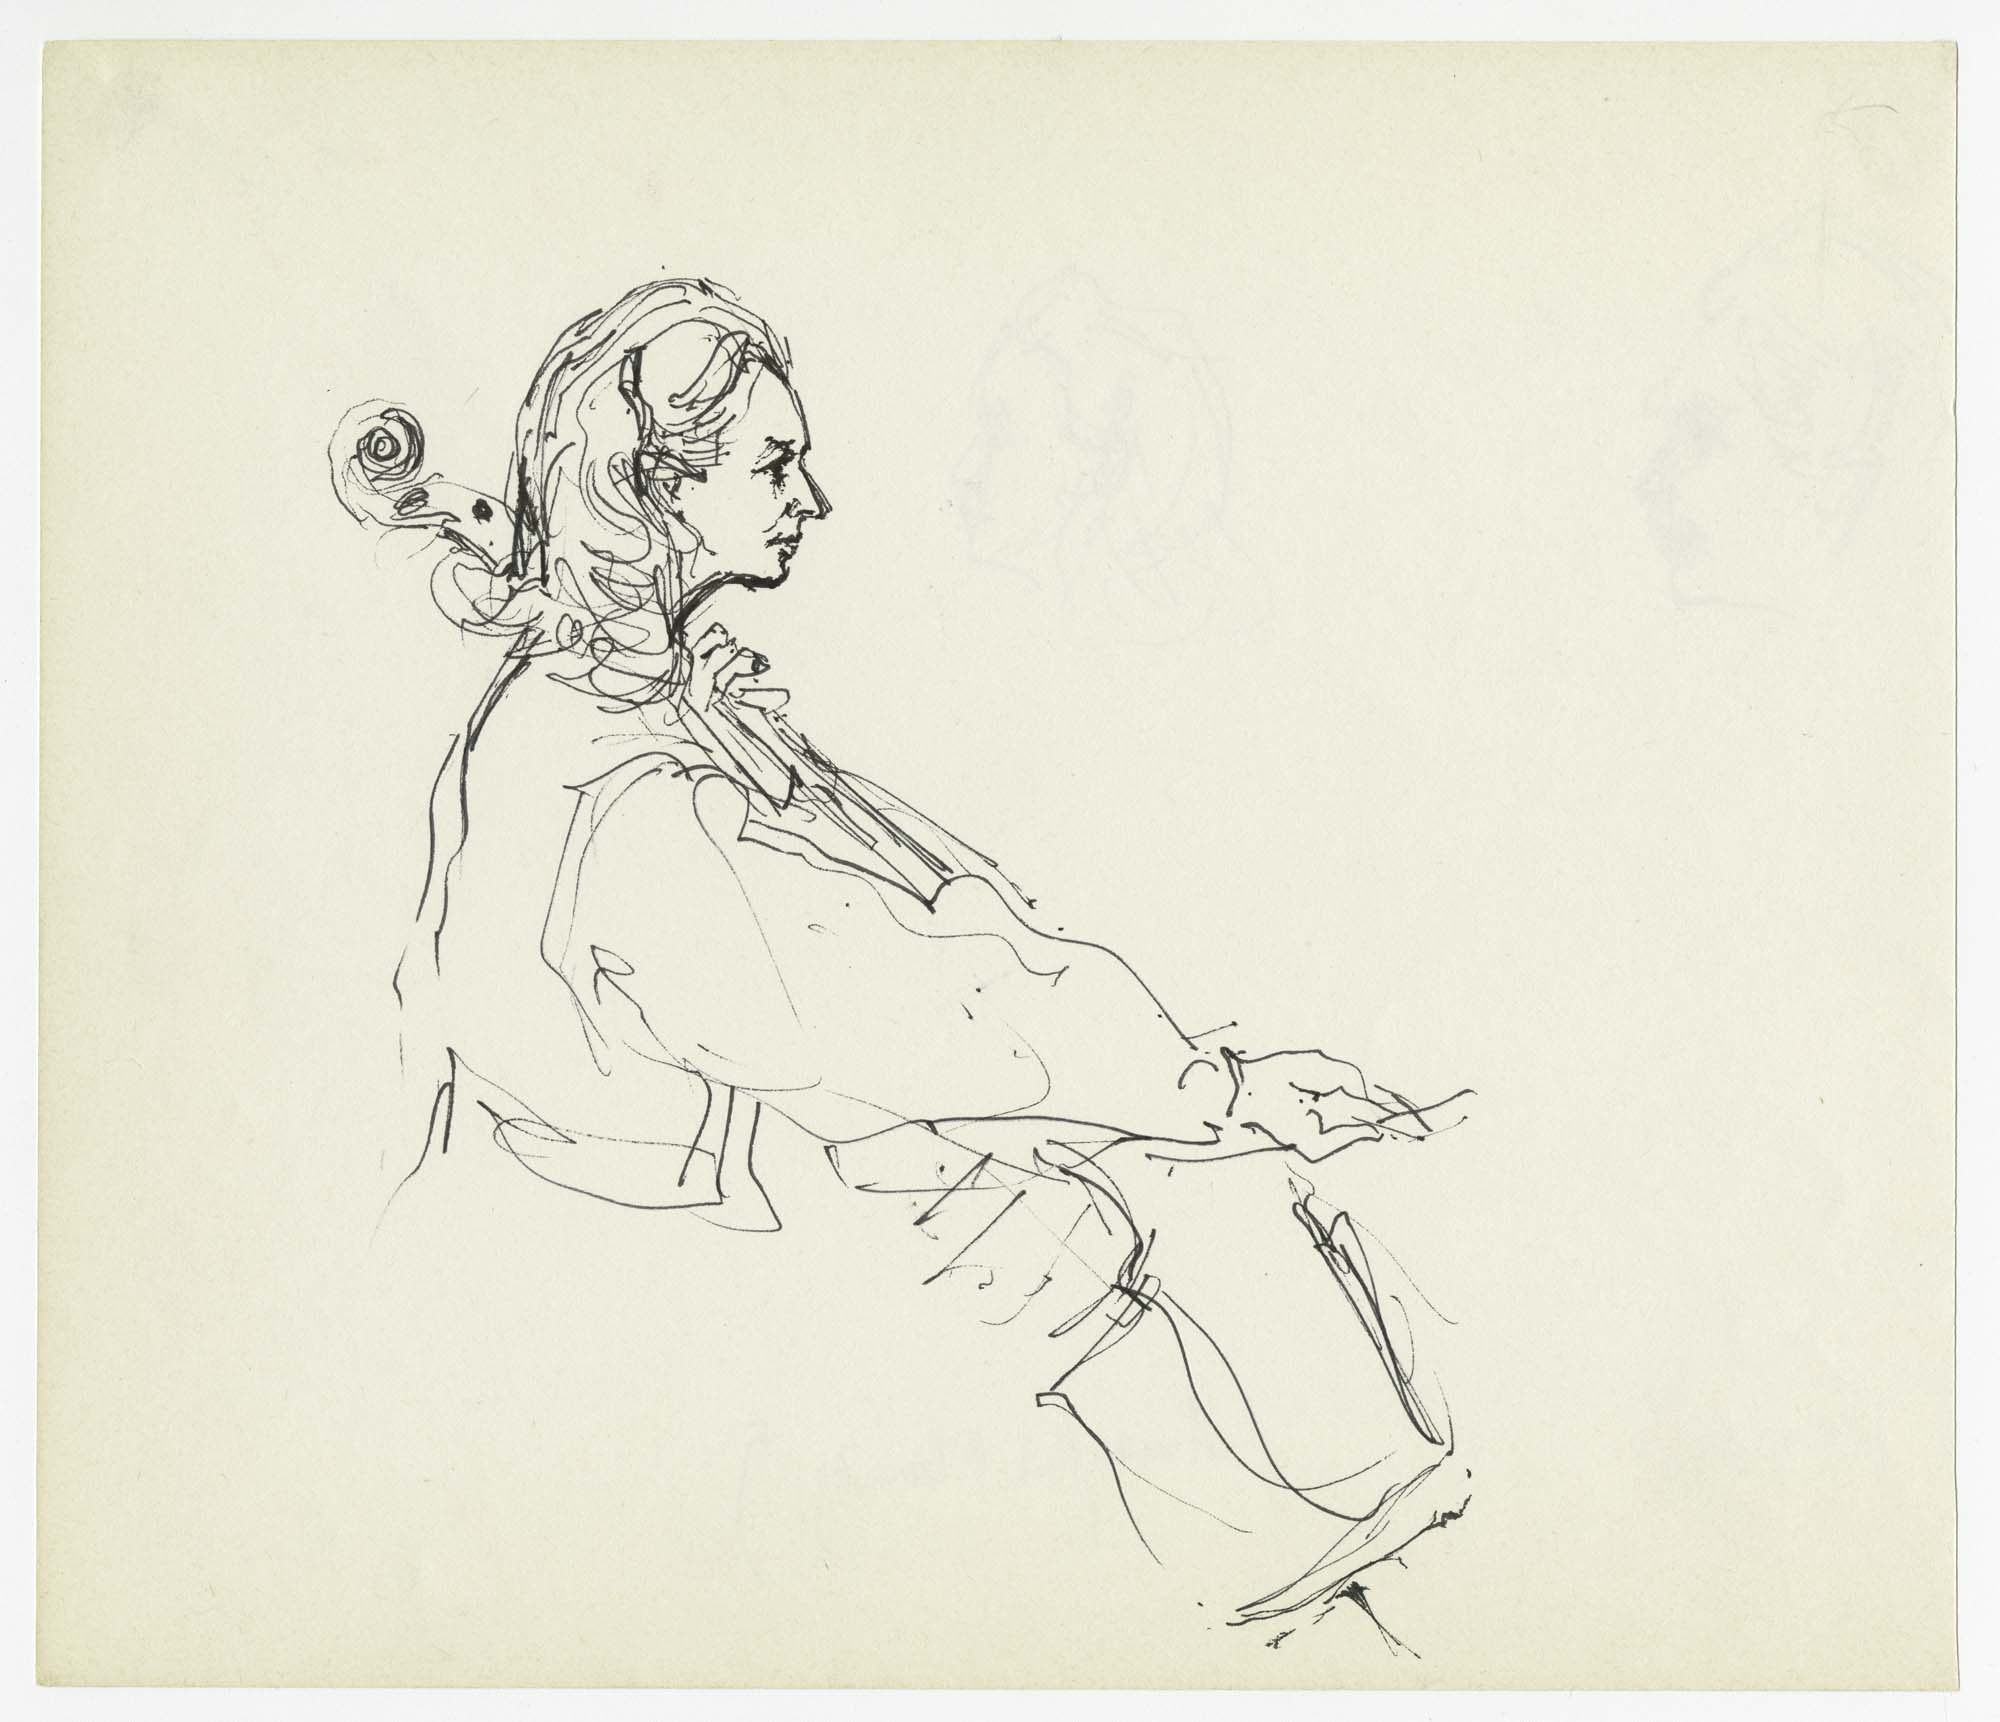 a side profile sketch of a woman playing the cello